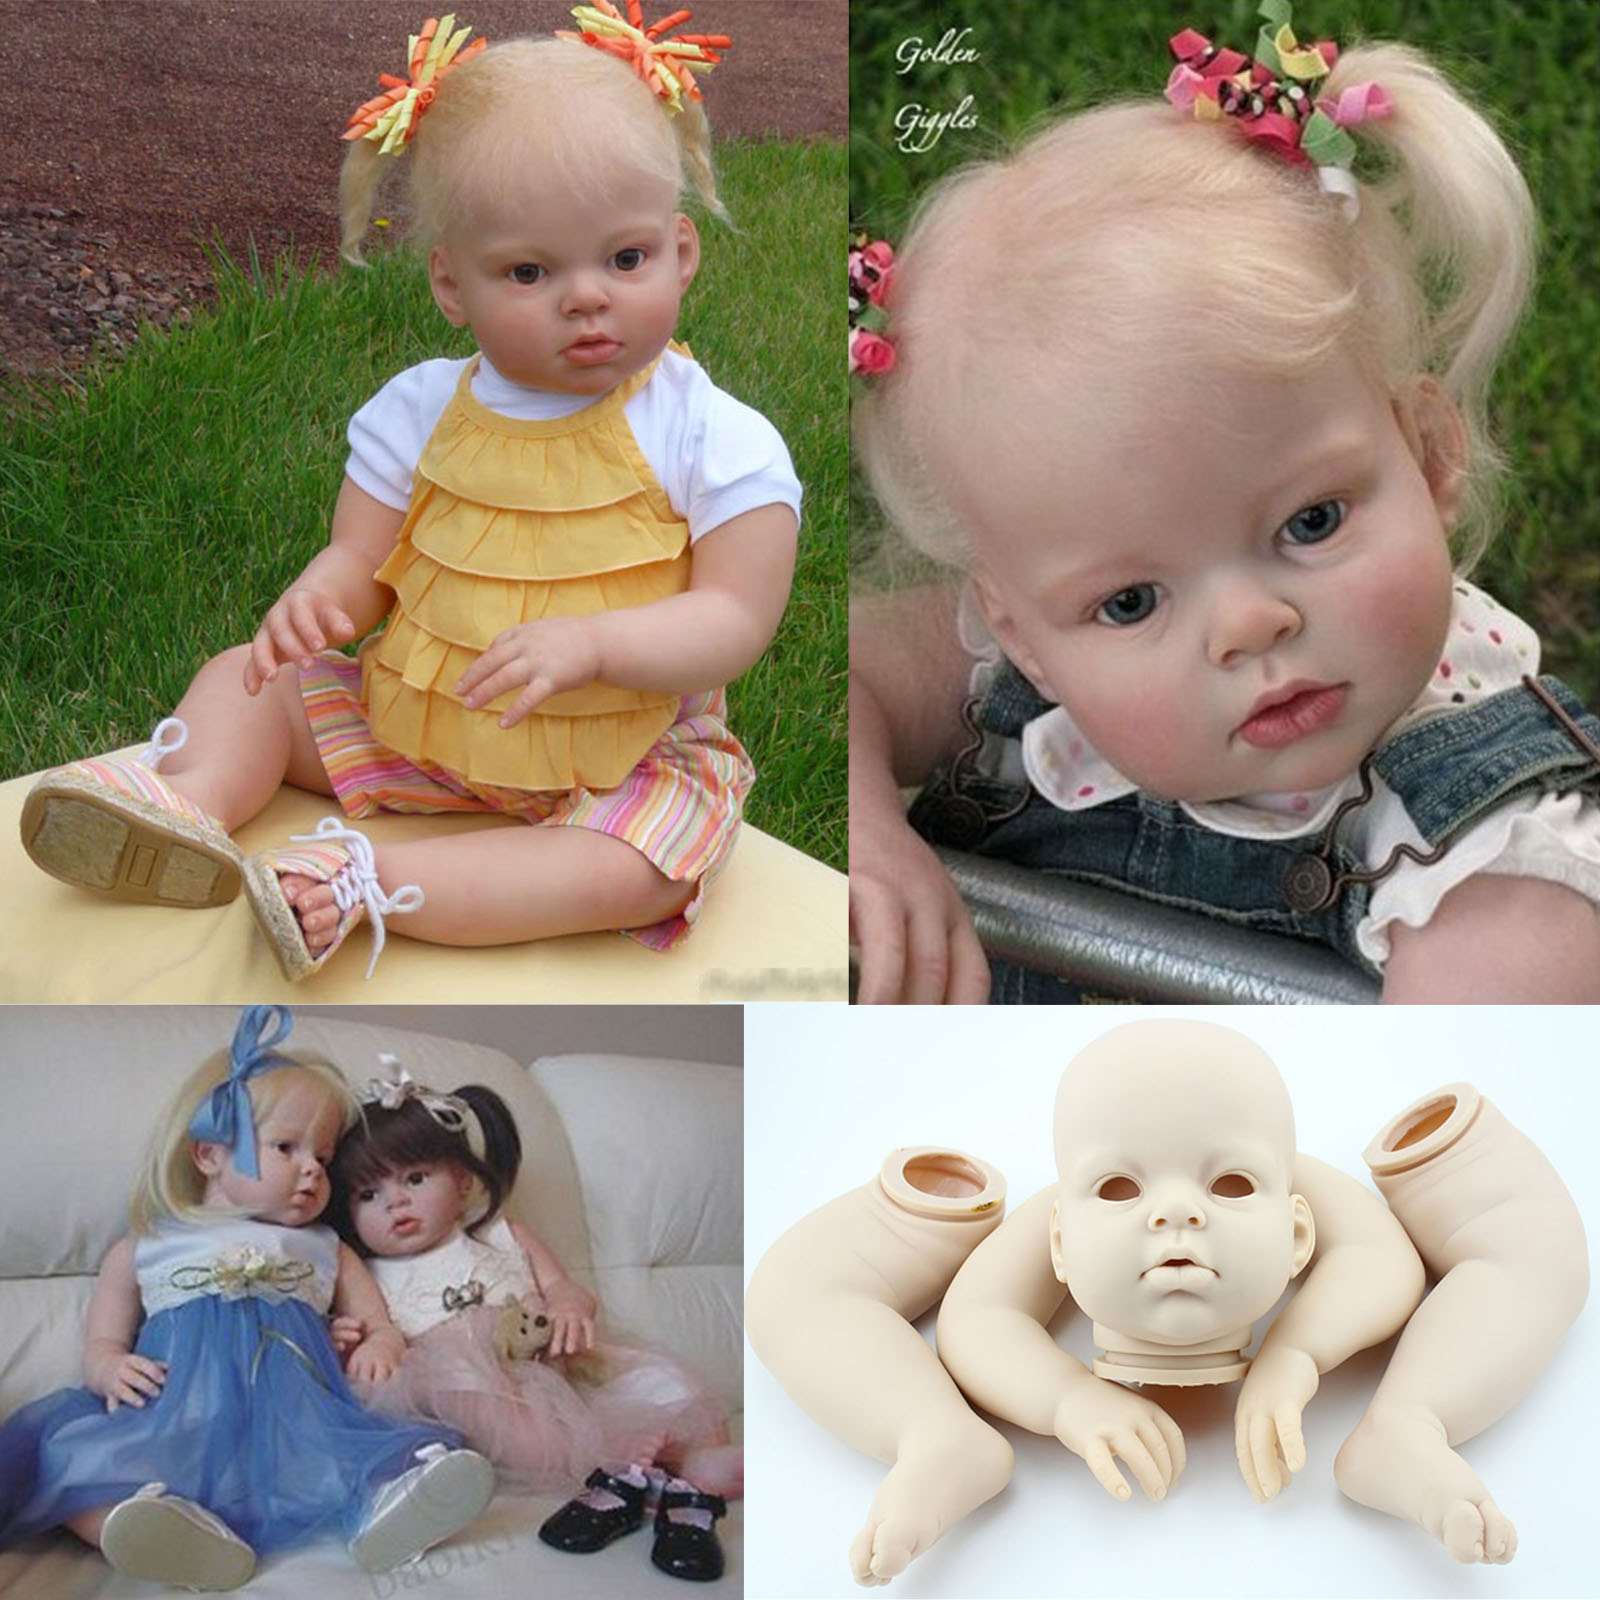 "Unpainted Reborn Baby Dolls Kits Realistic Looking Reborn Kits Supplies 22/"" Doll"